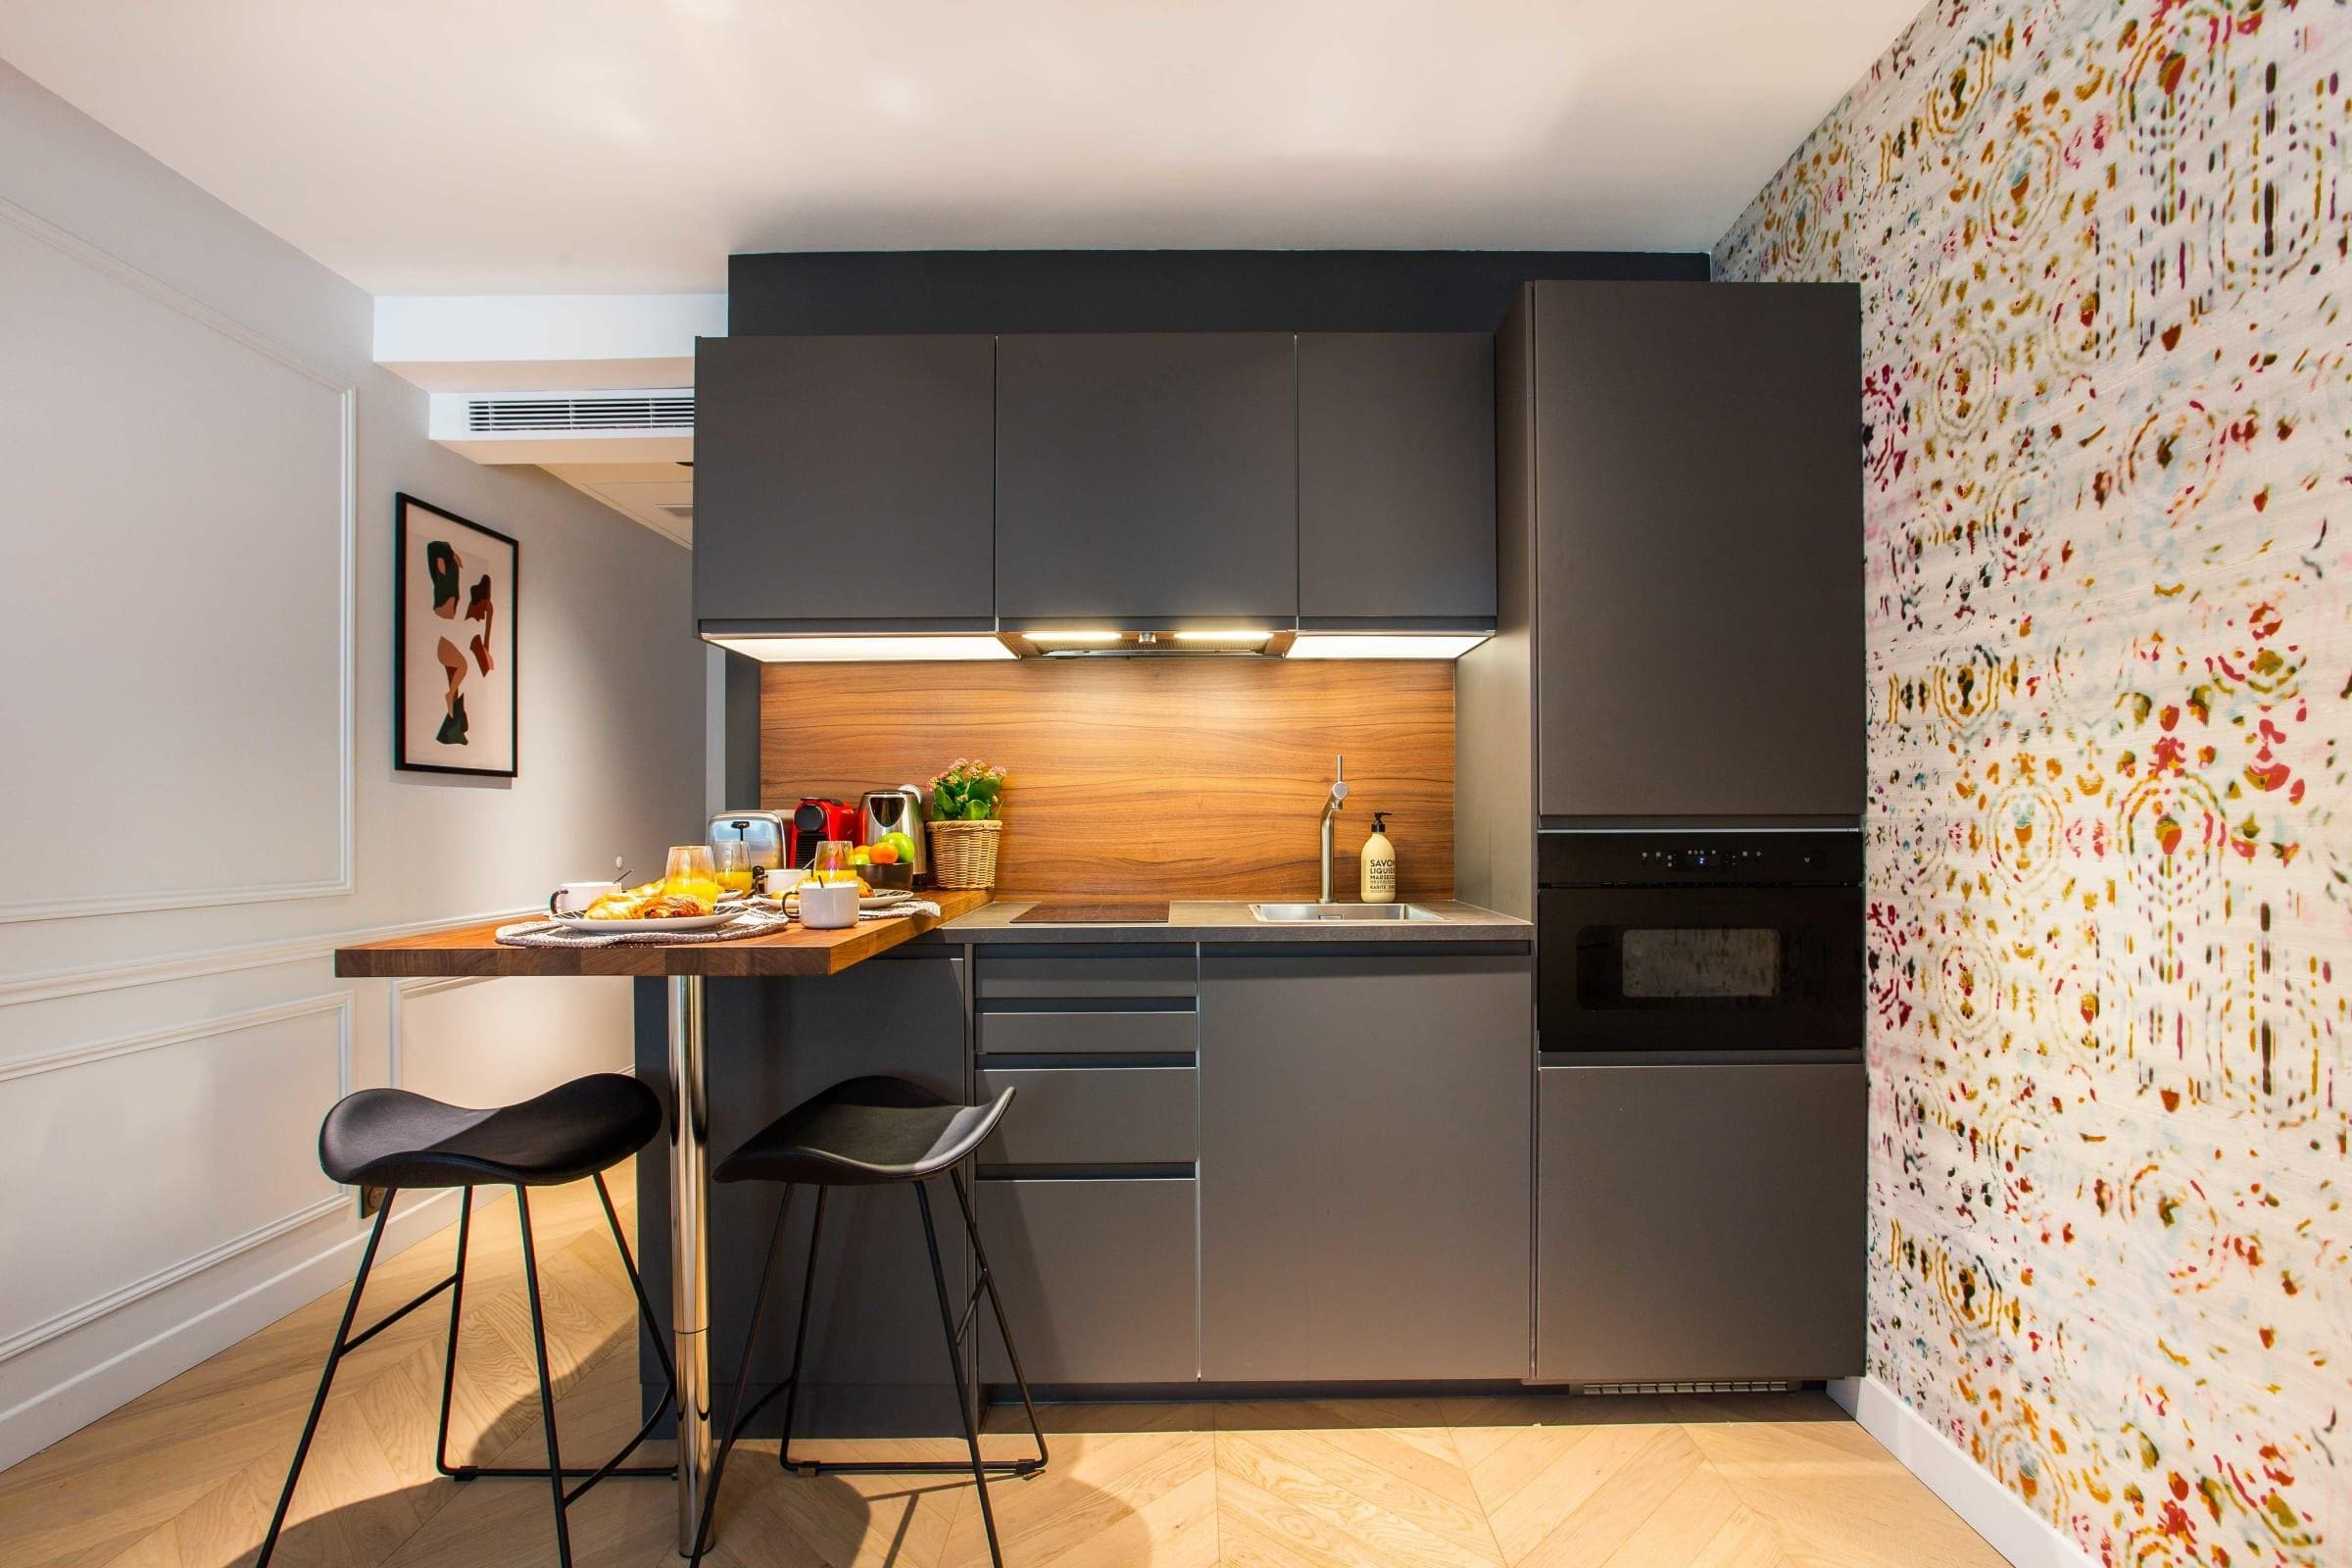 Montorgueil Dazzling Apartment with Lively Design